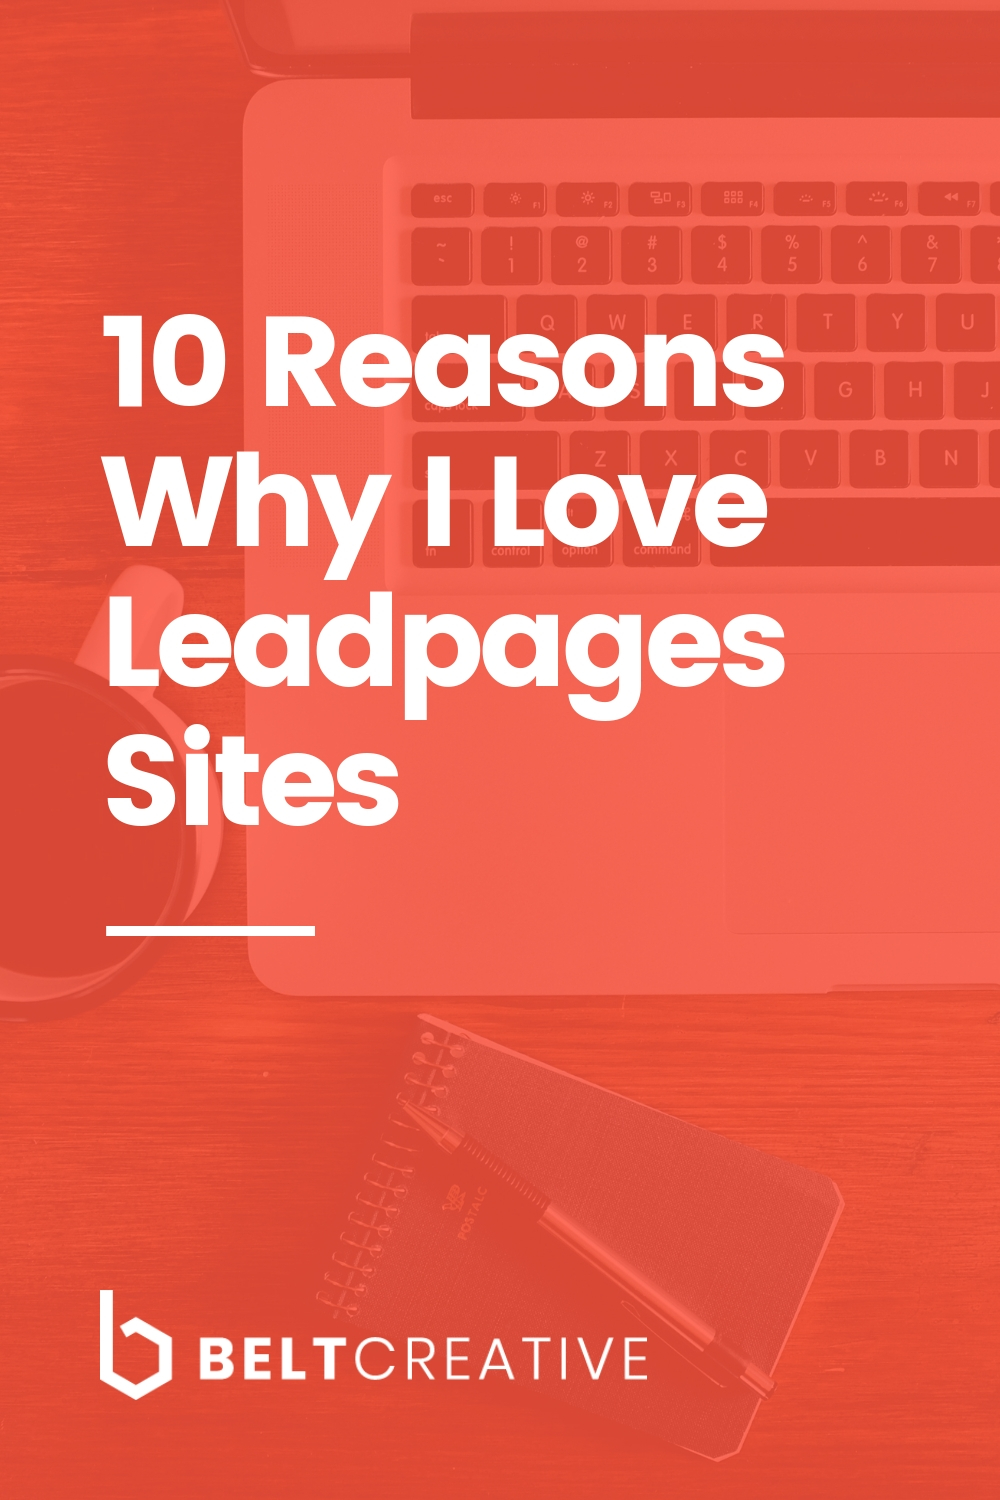 10 Reasons Why I Love Leadpages Sites.jpg